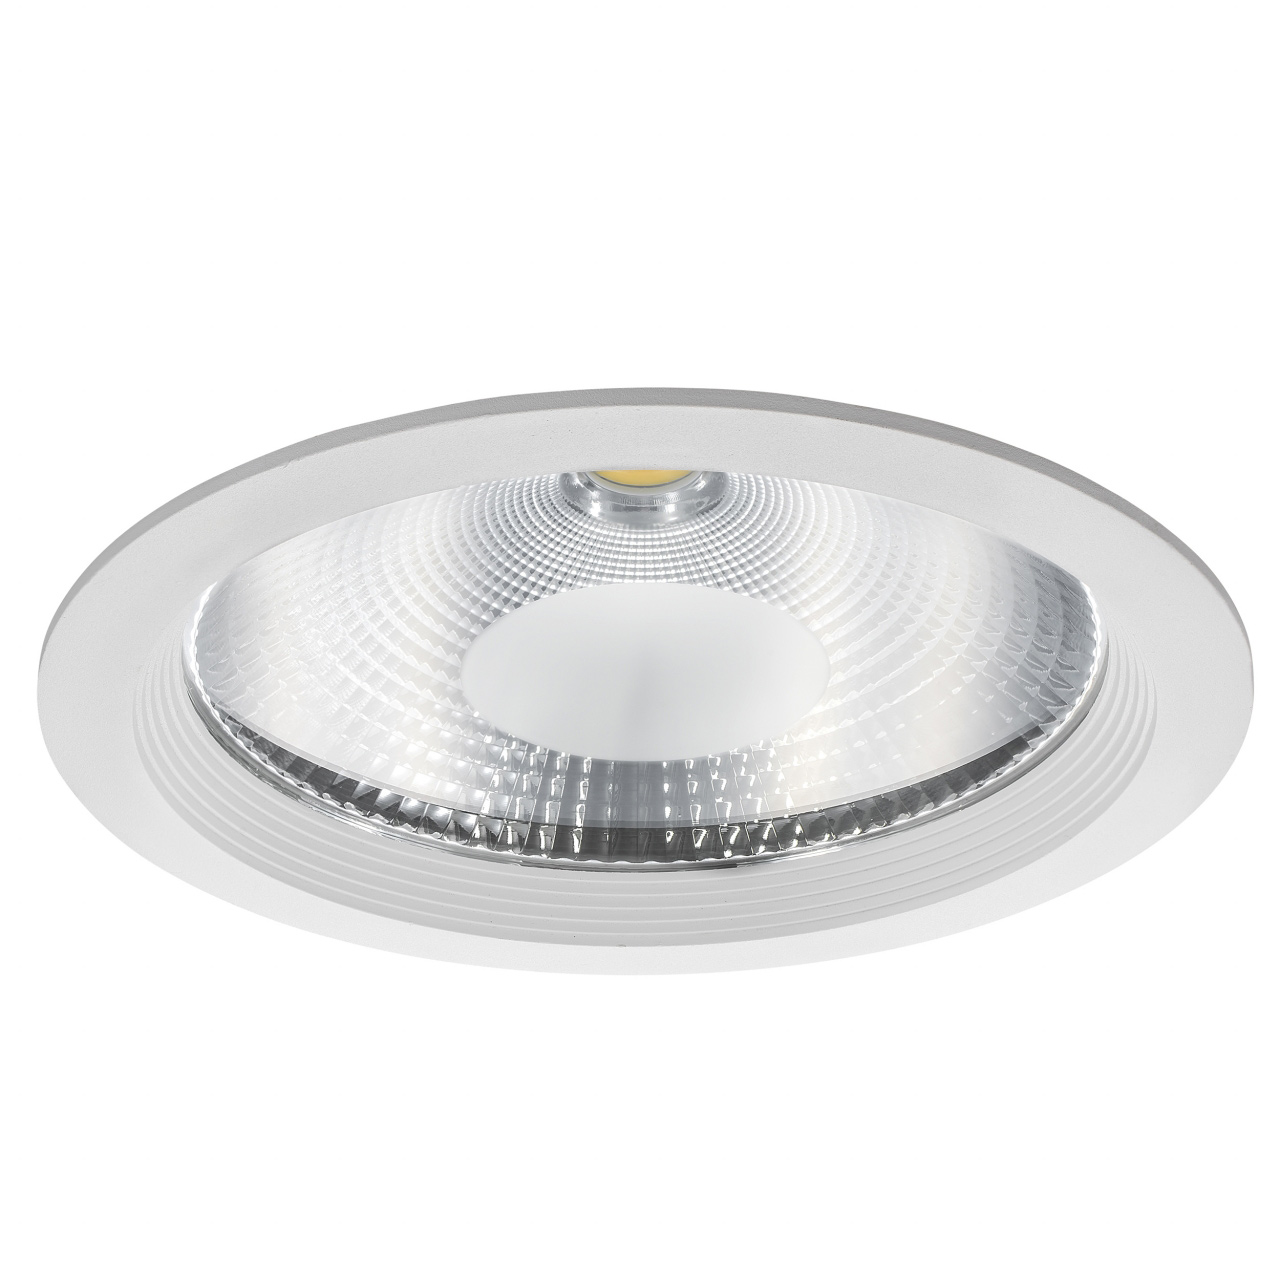 Светильник Forto LED 50W 4500LM 120G 4000K Lightstar 223504